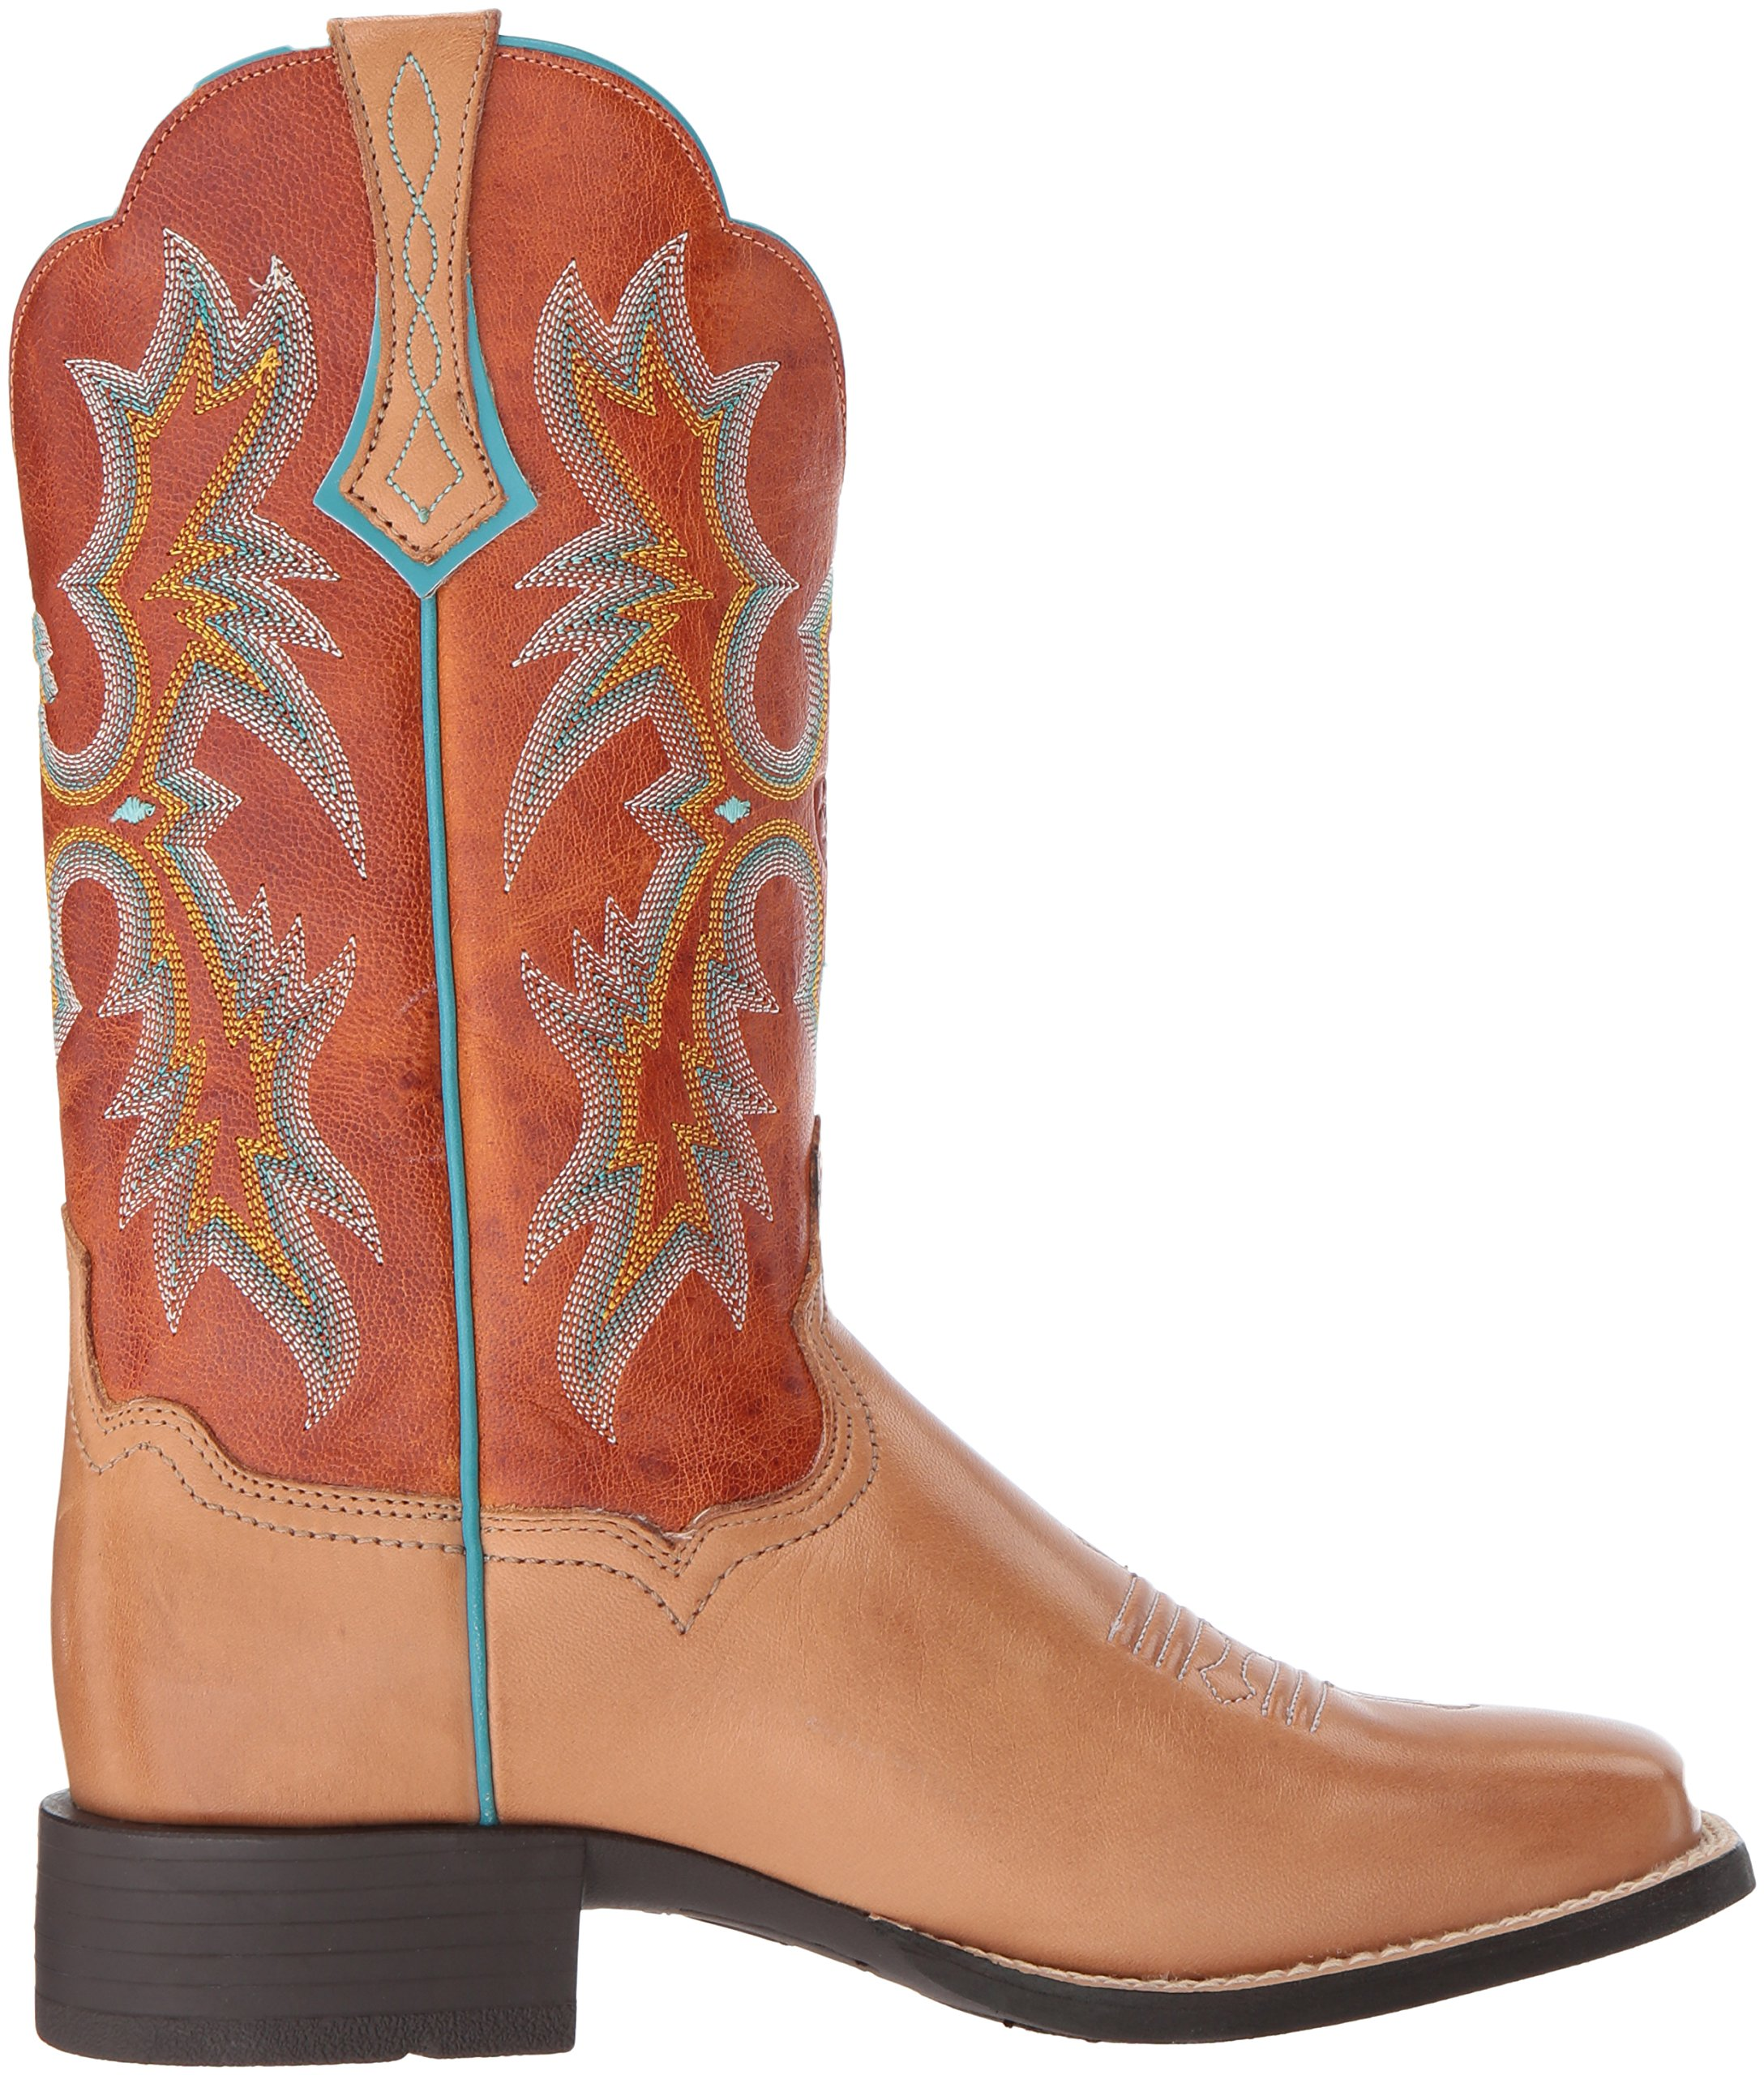 Ariat Women's Tombstone Work Boot, Tack Room Honey, 8.5 B US by Ariat (Image #7)